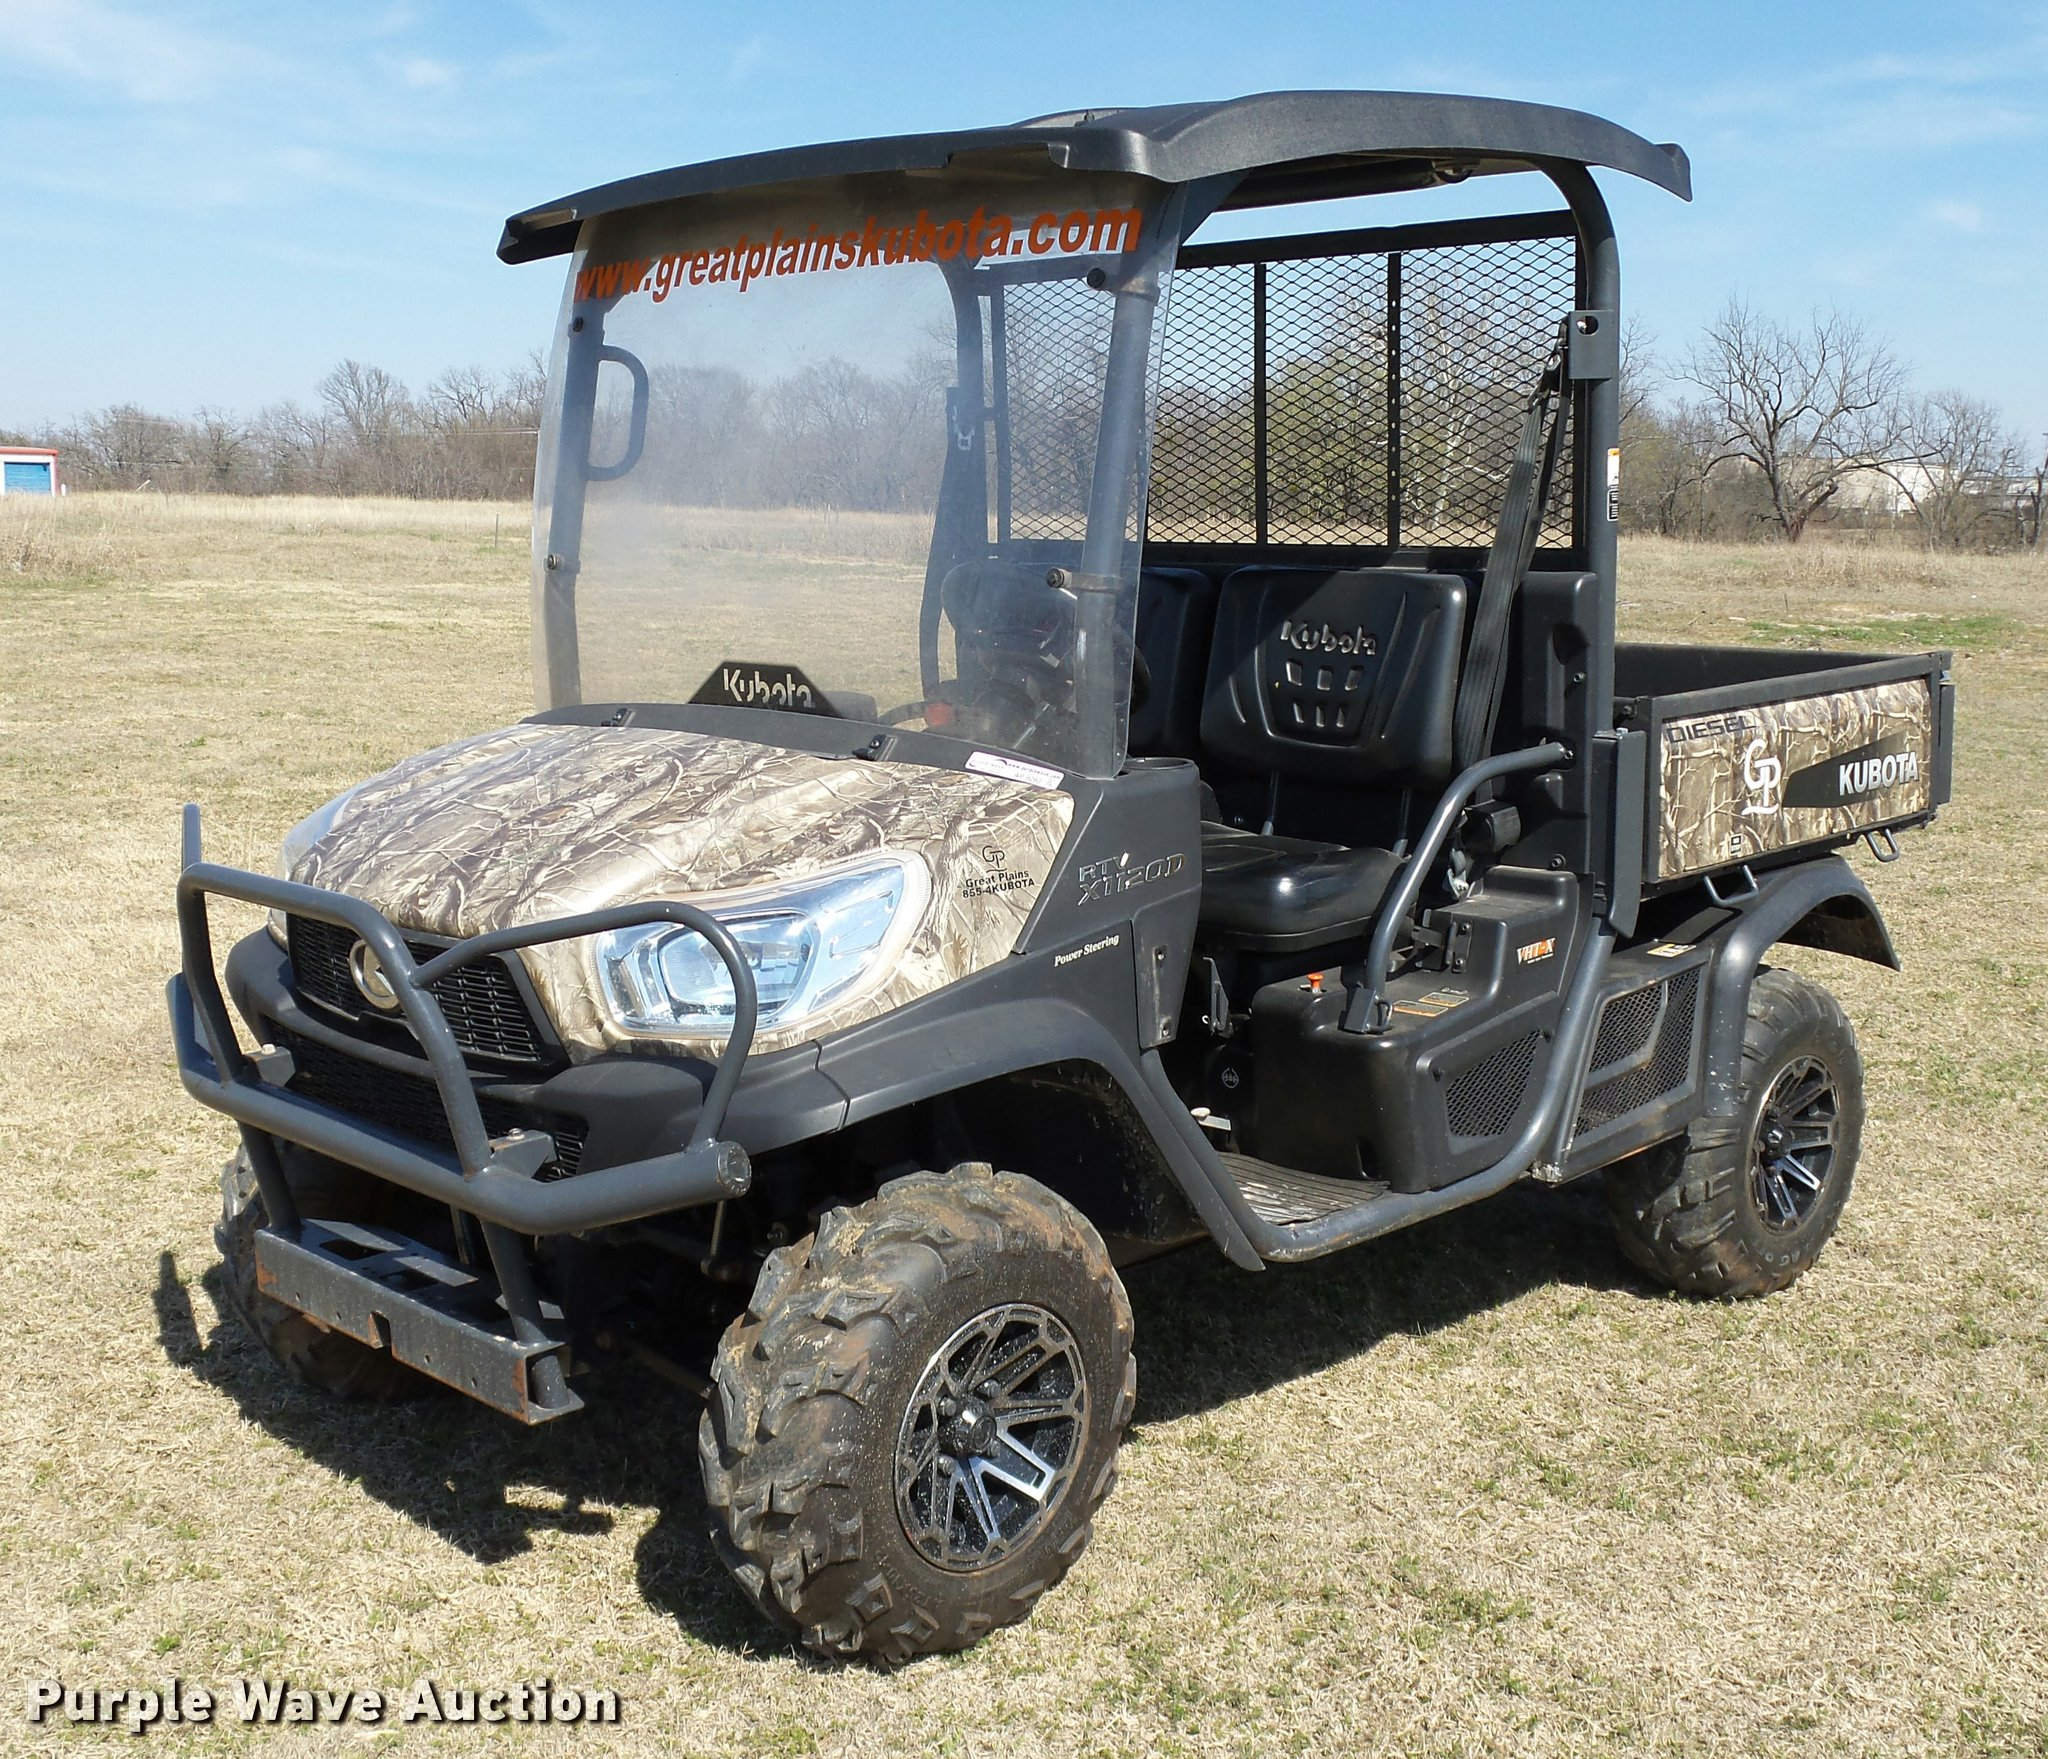 2014 Kubota RTV-X1120D utility vehicle | Item AP9293 | SOLD!... on beer golf cart, daihatsu golf cart, mg golf cart, kohler golf cart, parker golf cart, champion golf cart, ingersoll-rand golf cart, really big golf cart, stihl golf cart, case golf cart, clark golf cart, cub cadet golf cart, dixon golf cart, diesel powered golf cart, snapper golf cart, japan golf cart, fun golf cart, woods golf cart, komatsu golf cart, echo golf cart,